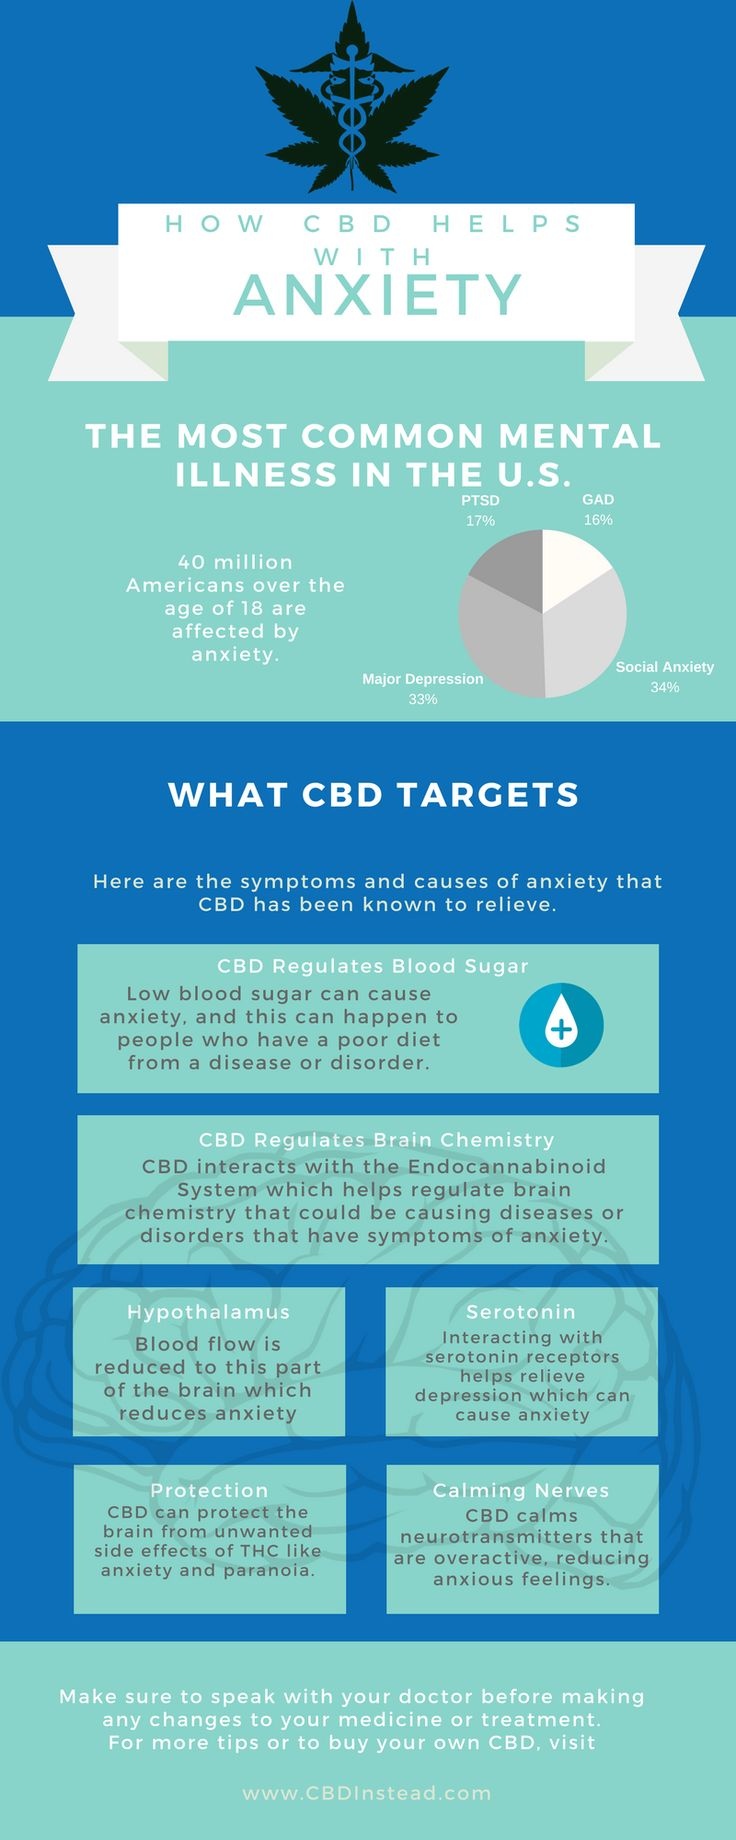 Here are some ways that CBD helps with anxiety. Many people suffer from General Anxiety Disorder, PTSD, Depression, Social Anxiety, and other diseases that can trickle into similar symptoms. Talk to your doctor to find out with switching to medical marijuana might be the best solution for you.